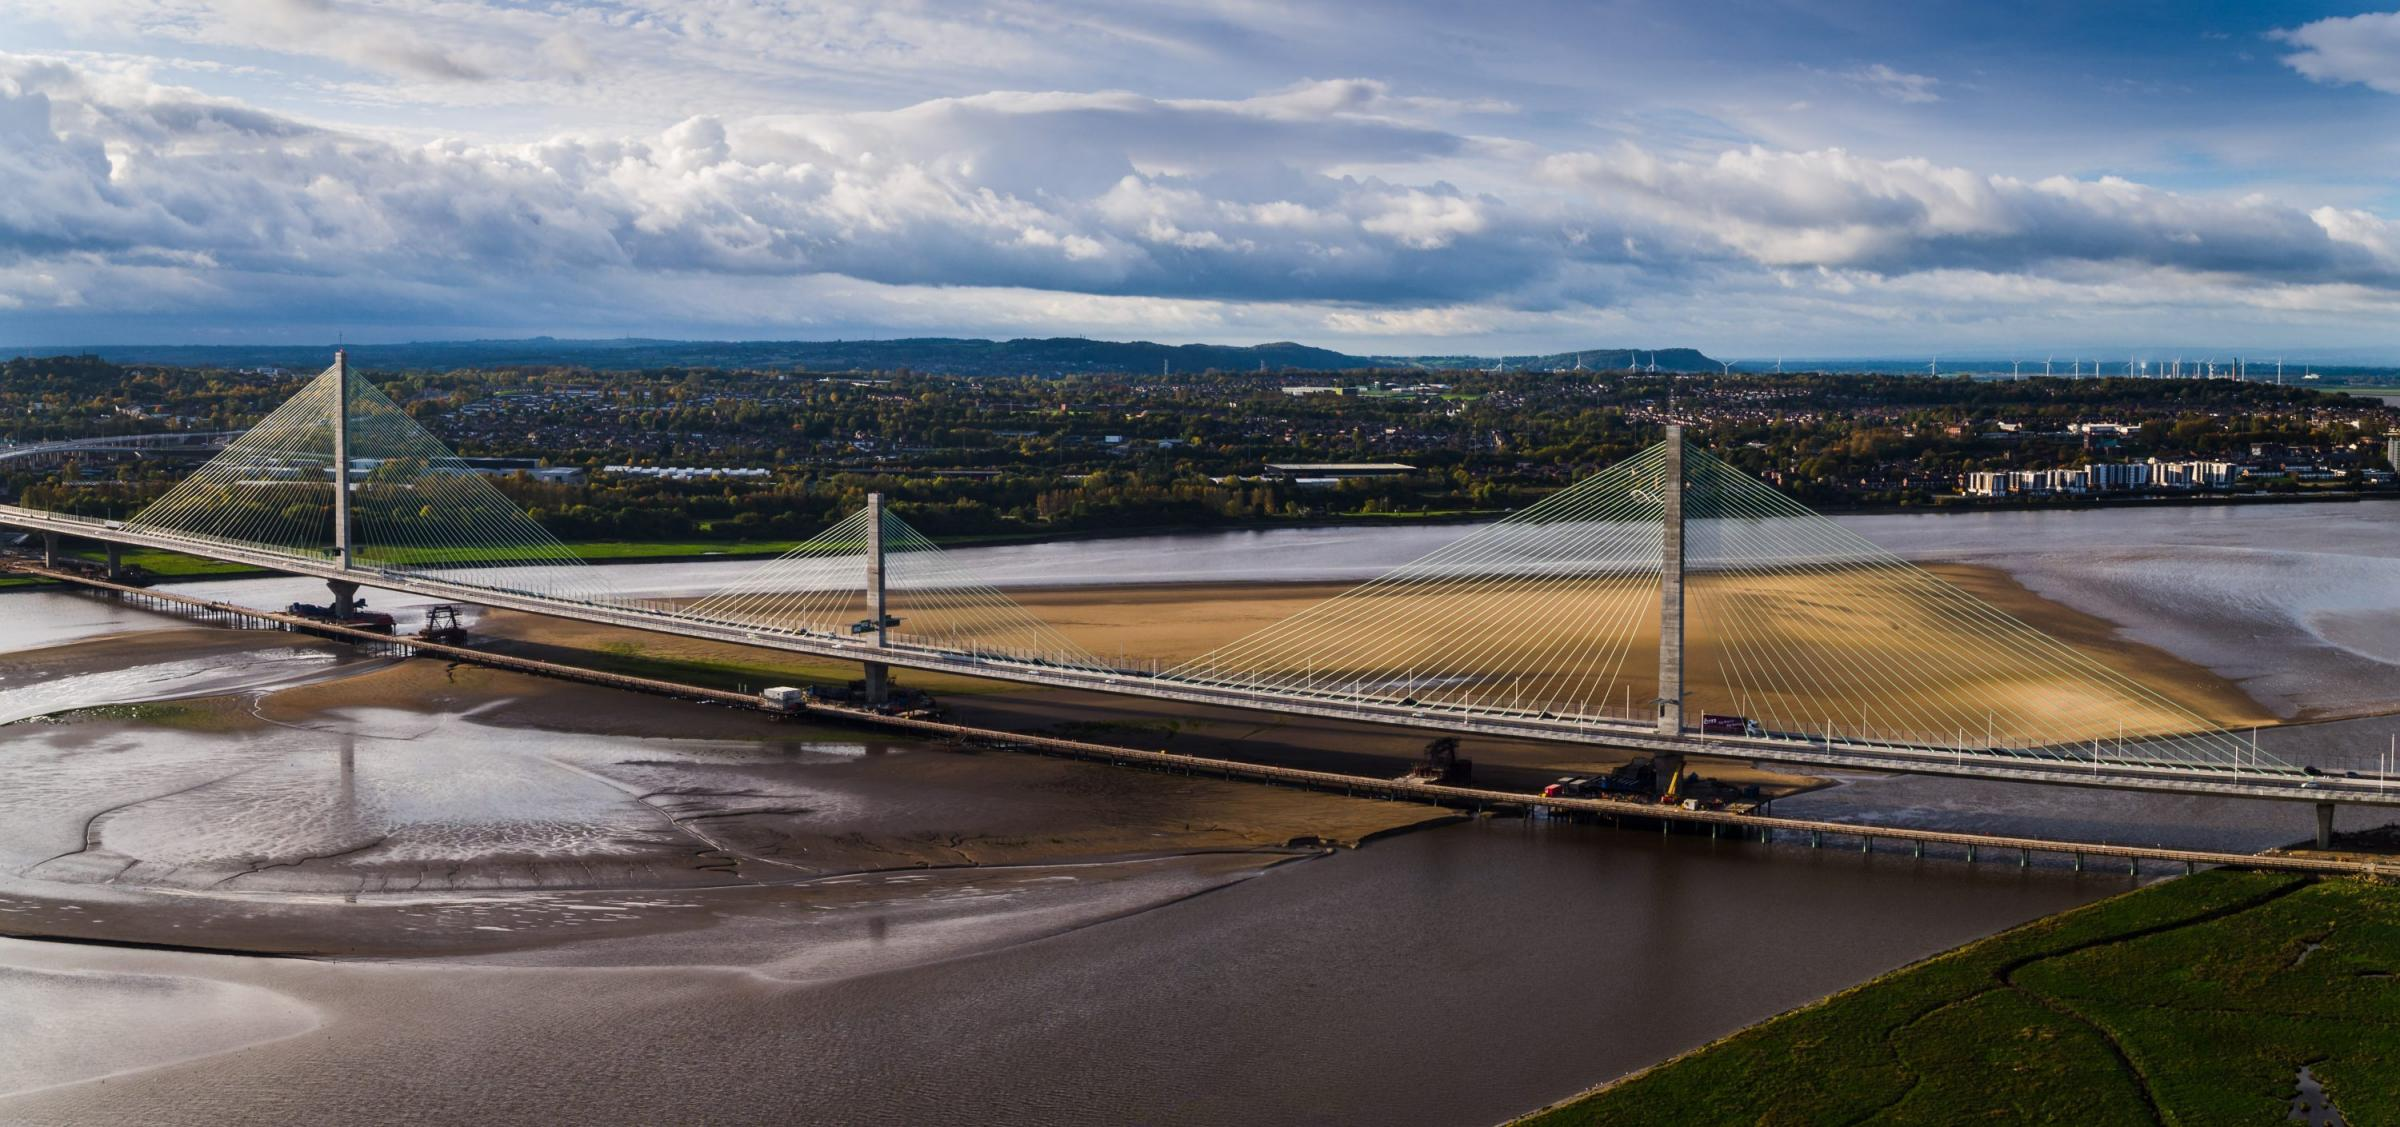 Mersey Gateway tolls campaigners set to protest during Queen's visit